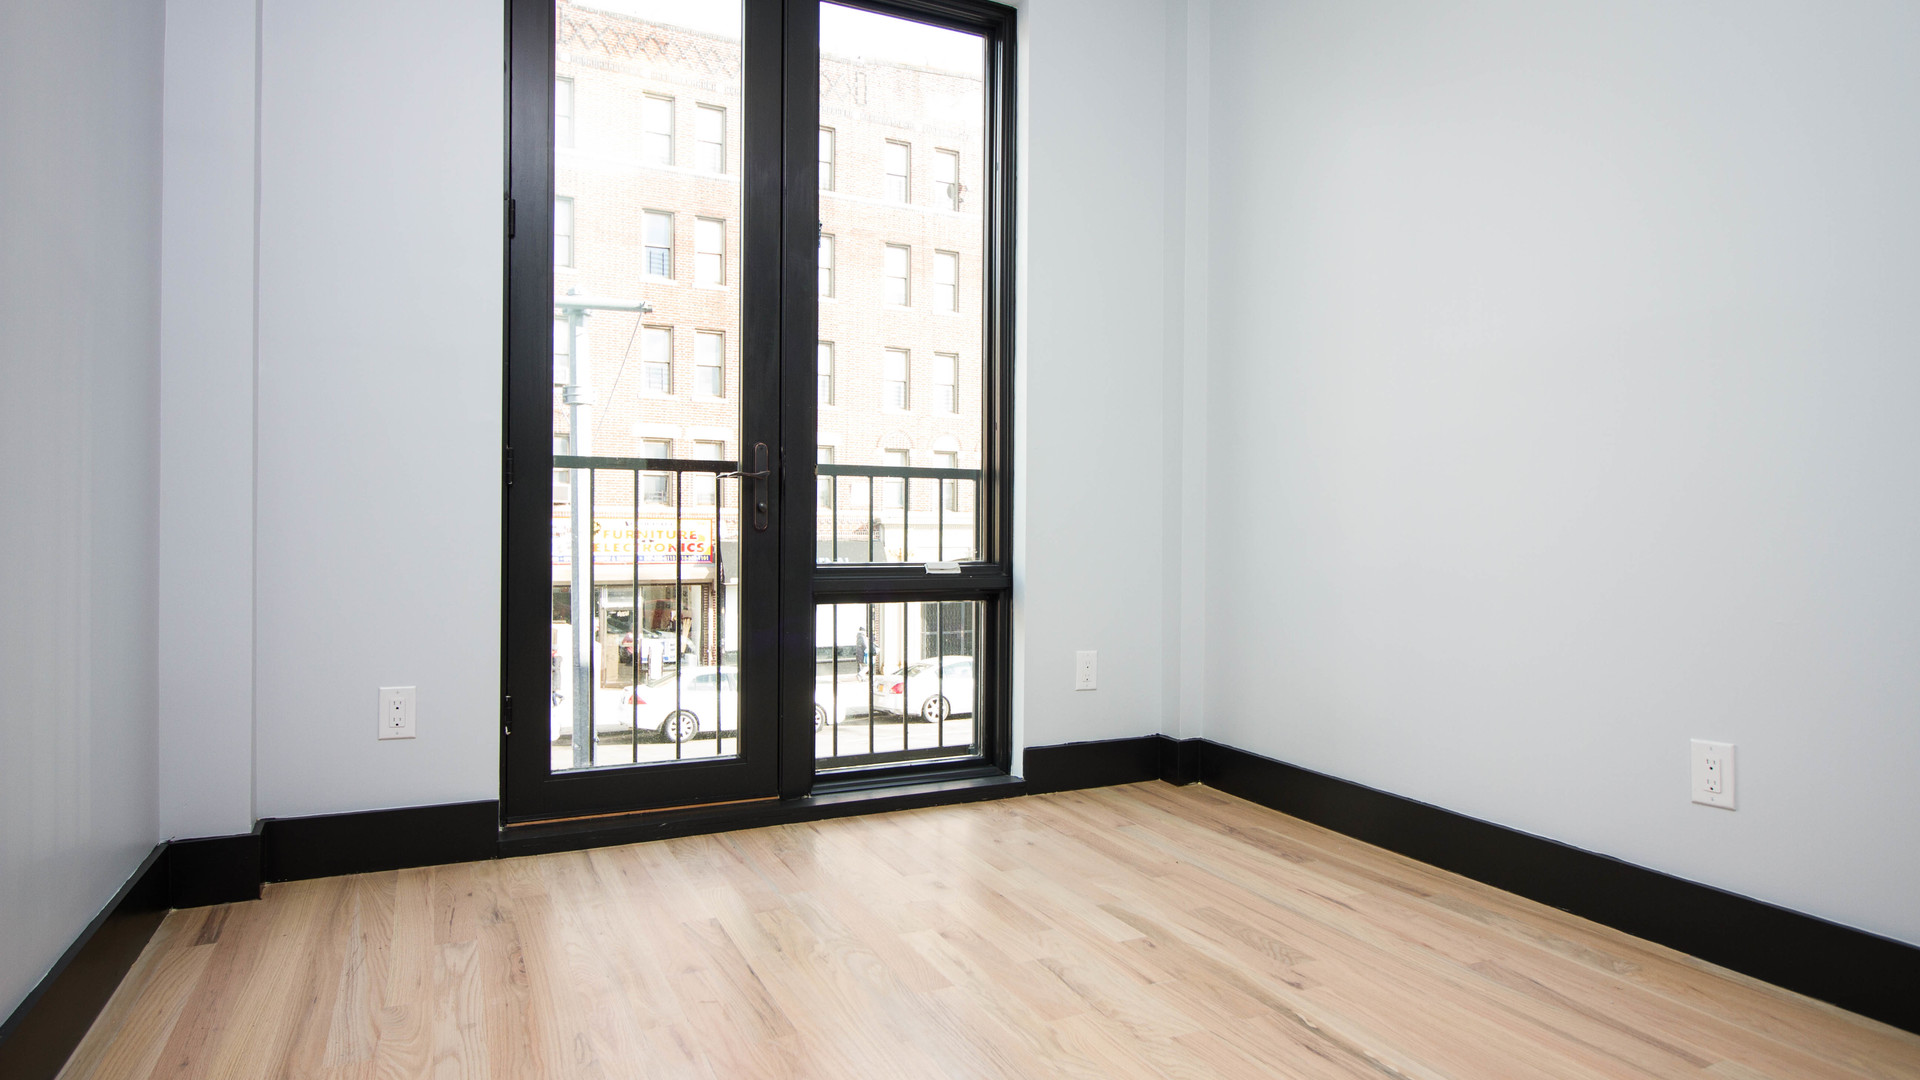 016 1544 nostrand ave 2f %289 of 21%29